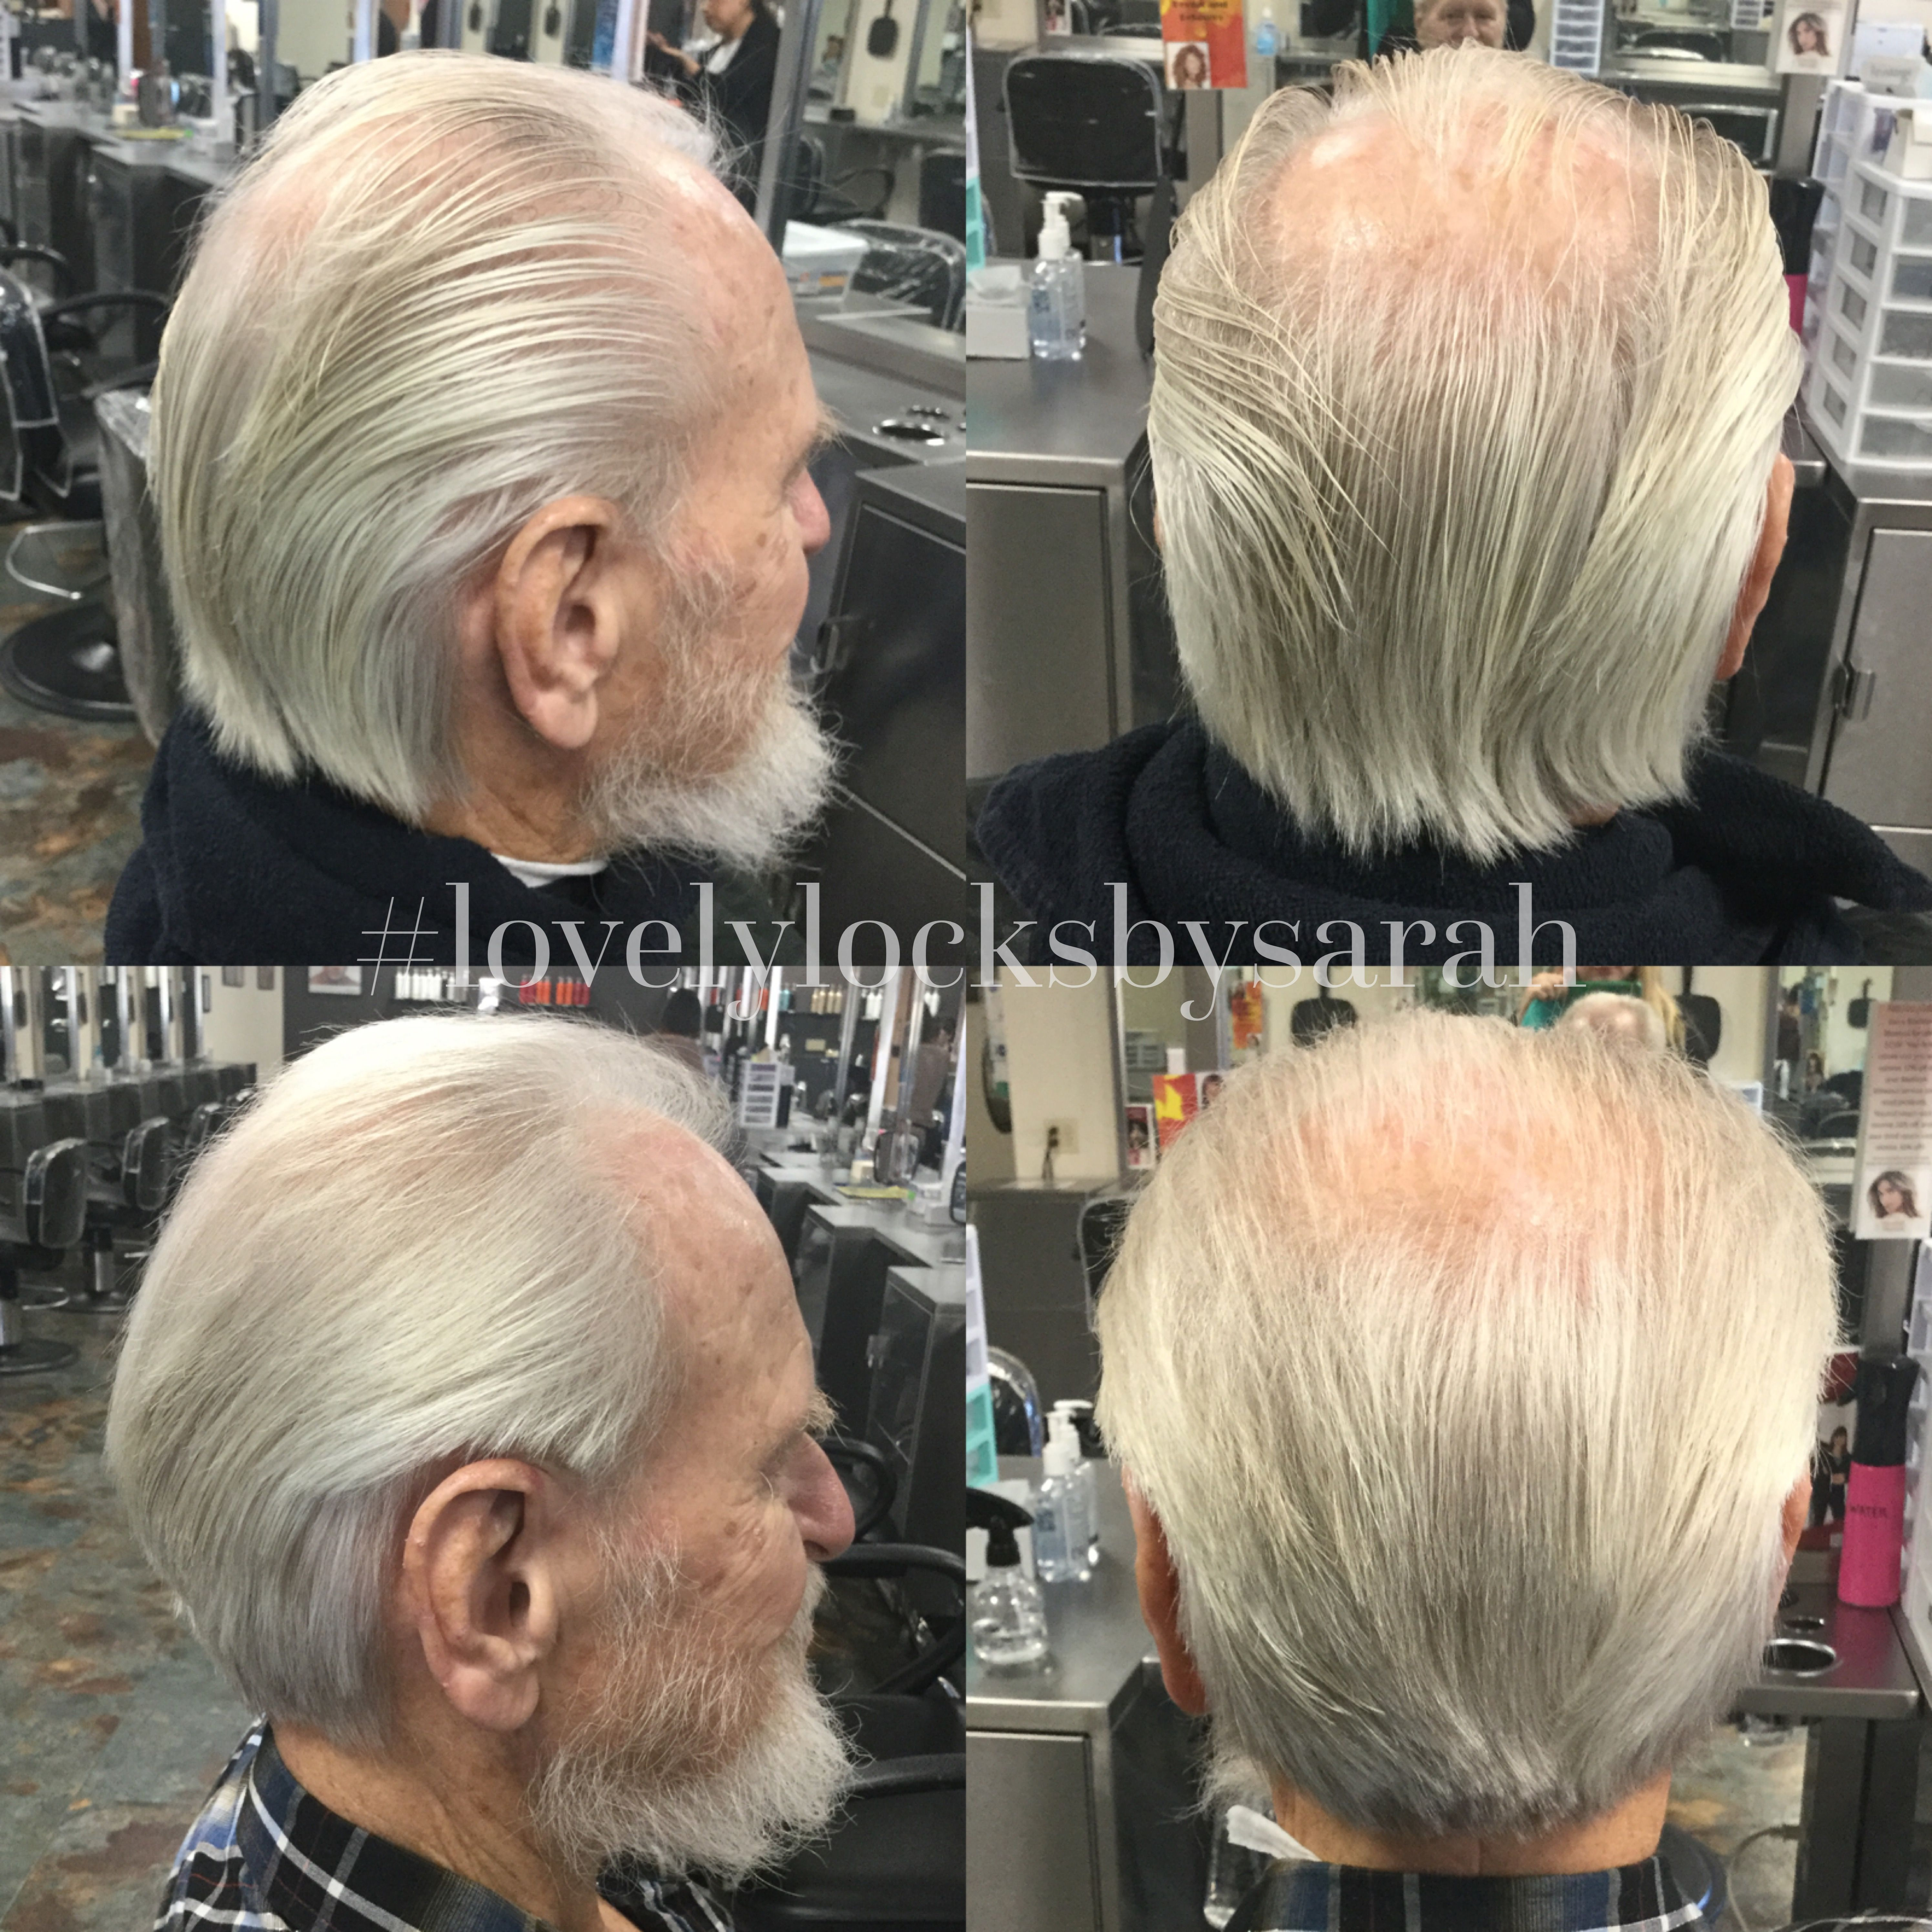 December 6 2016 45 To 90 Degree Haircut Products Nioxin Style Foam Texturizer 90 Degree Haircut Degree Haircut Haircuts For Men